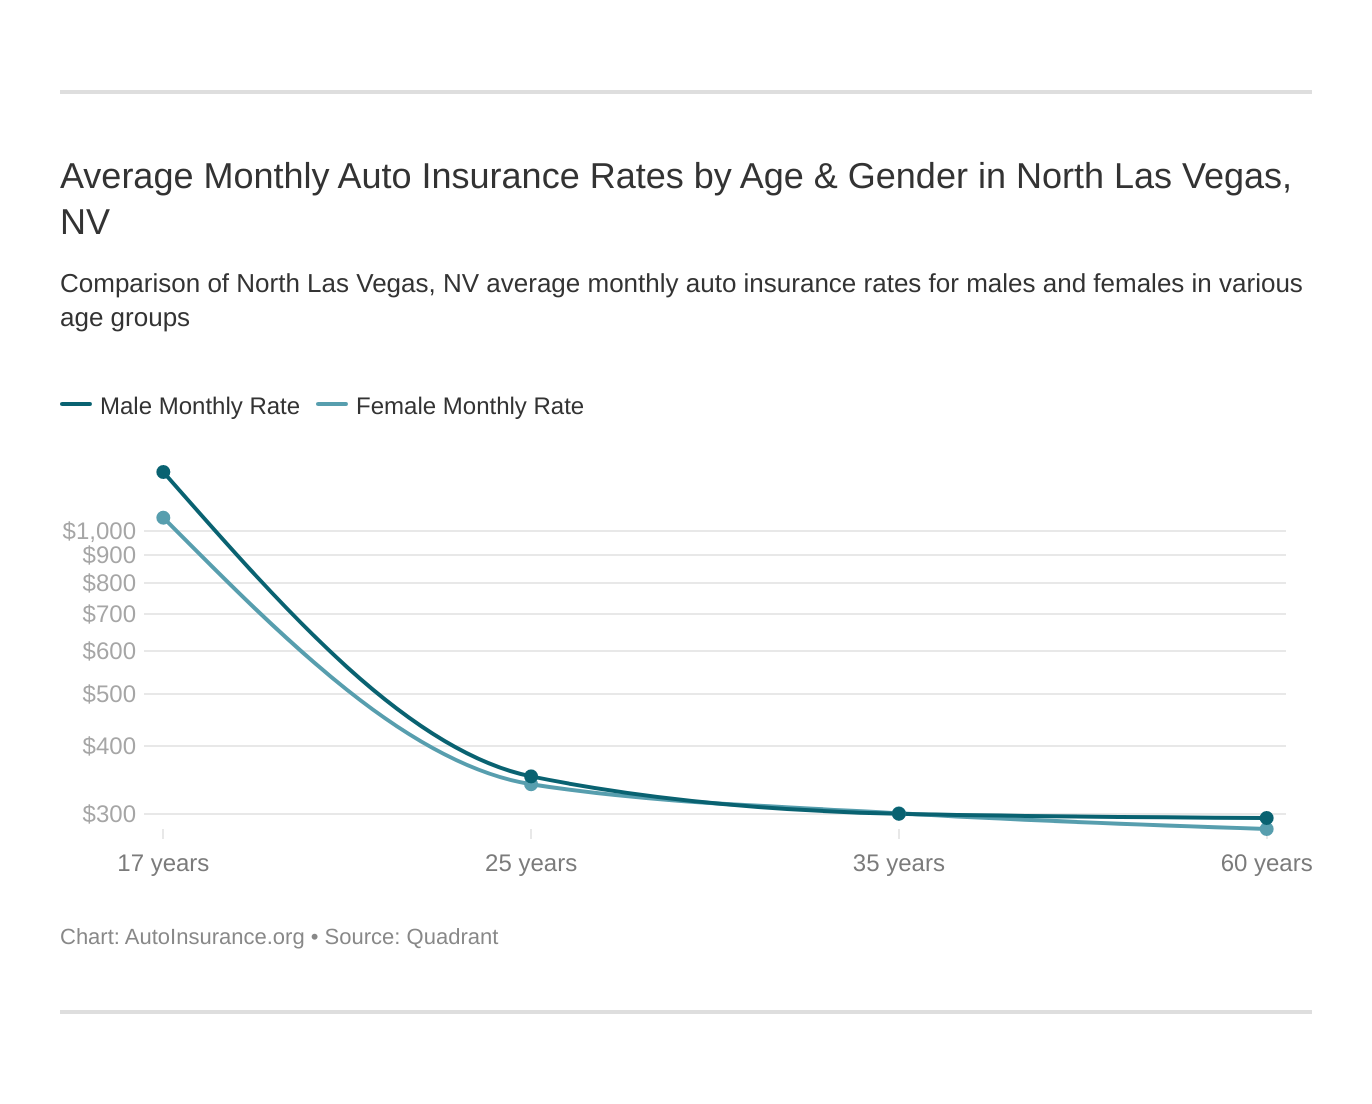 Average Monthly Auto Insurance Rates by Age & Gender in North Las Vegas, NV